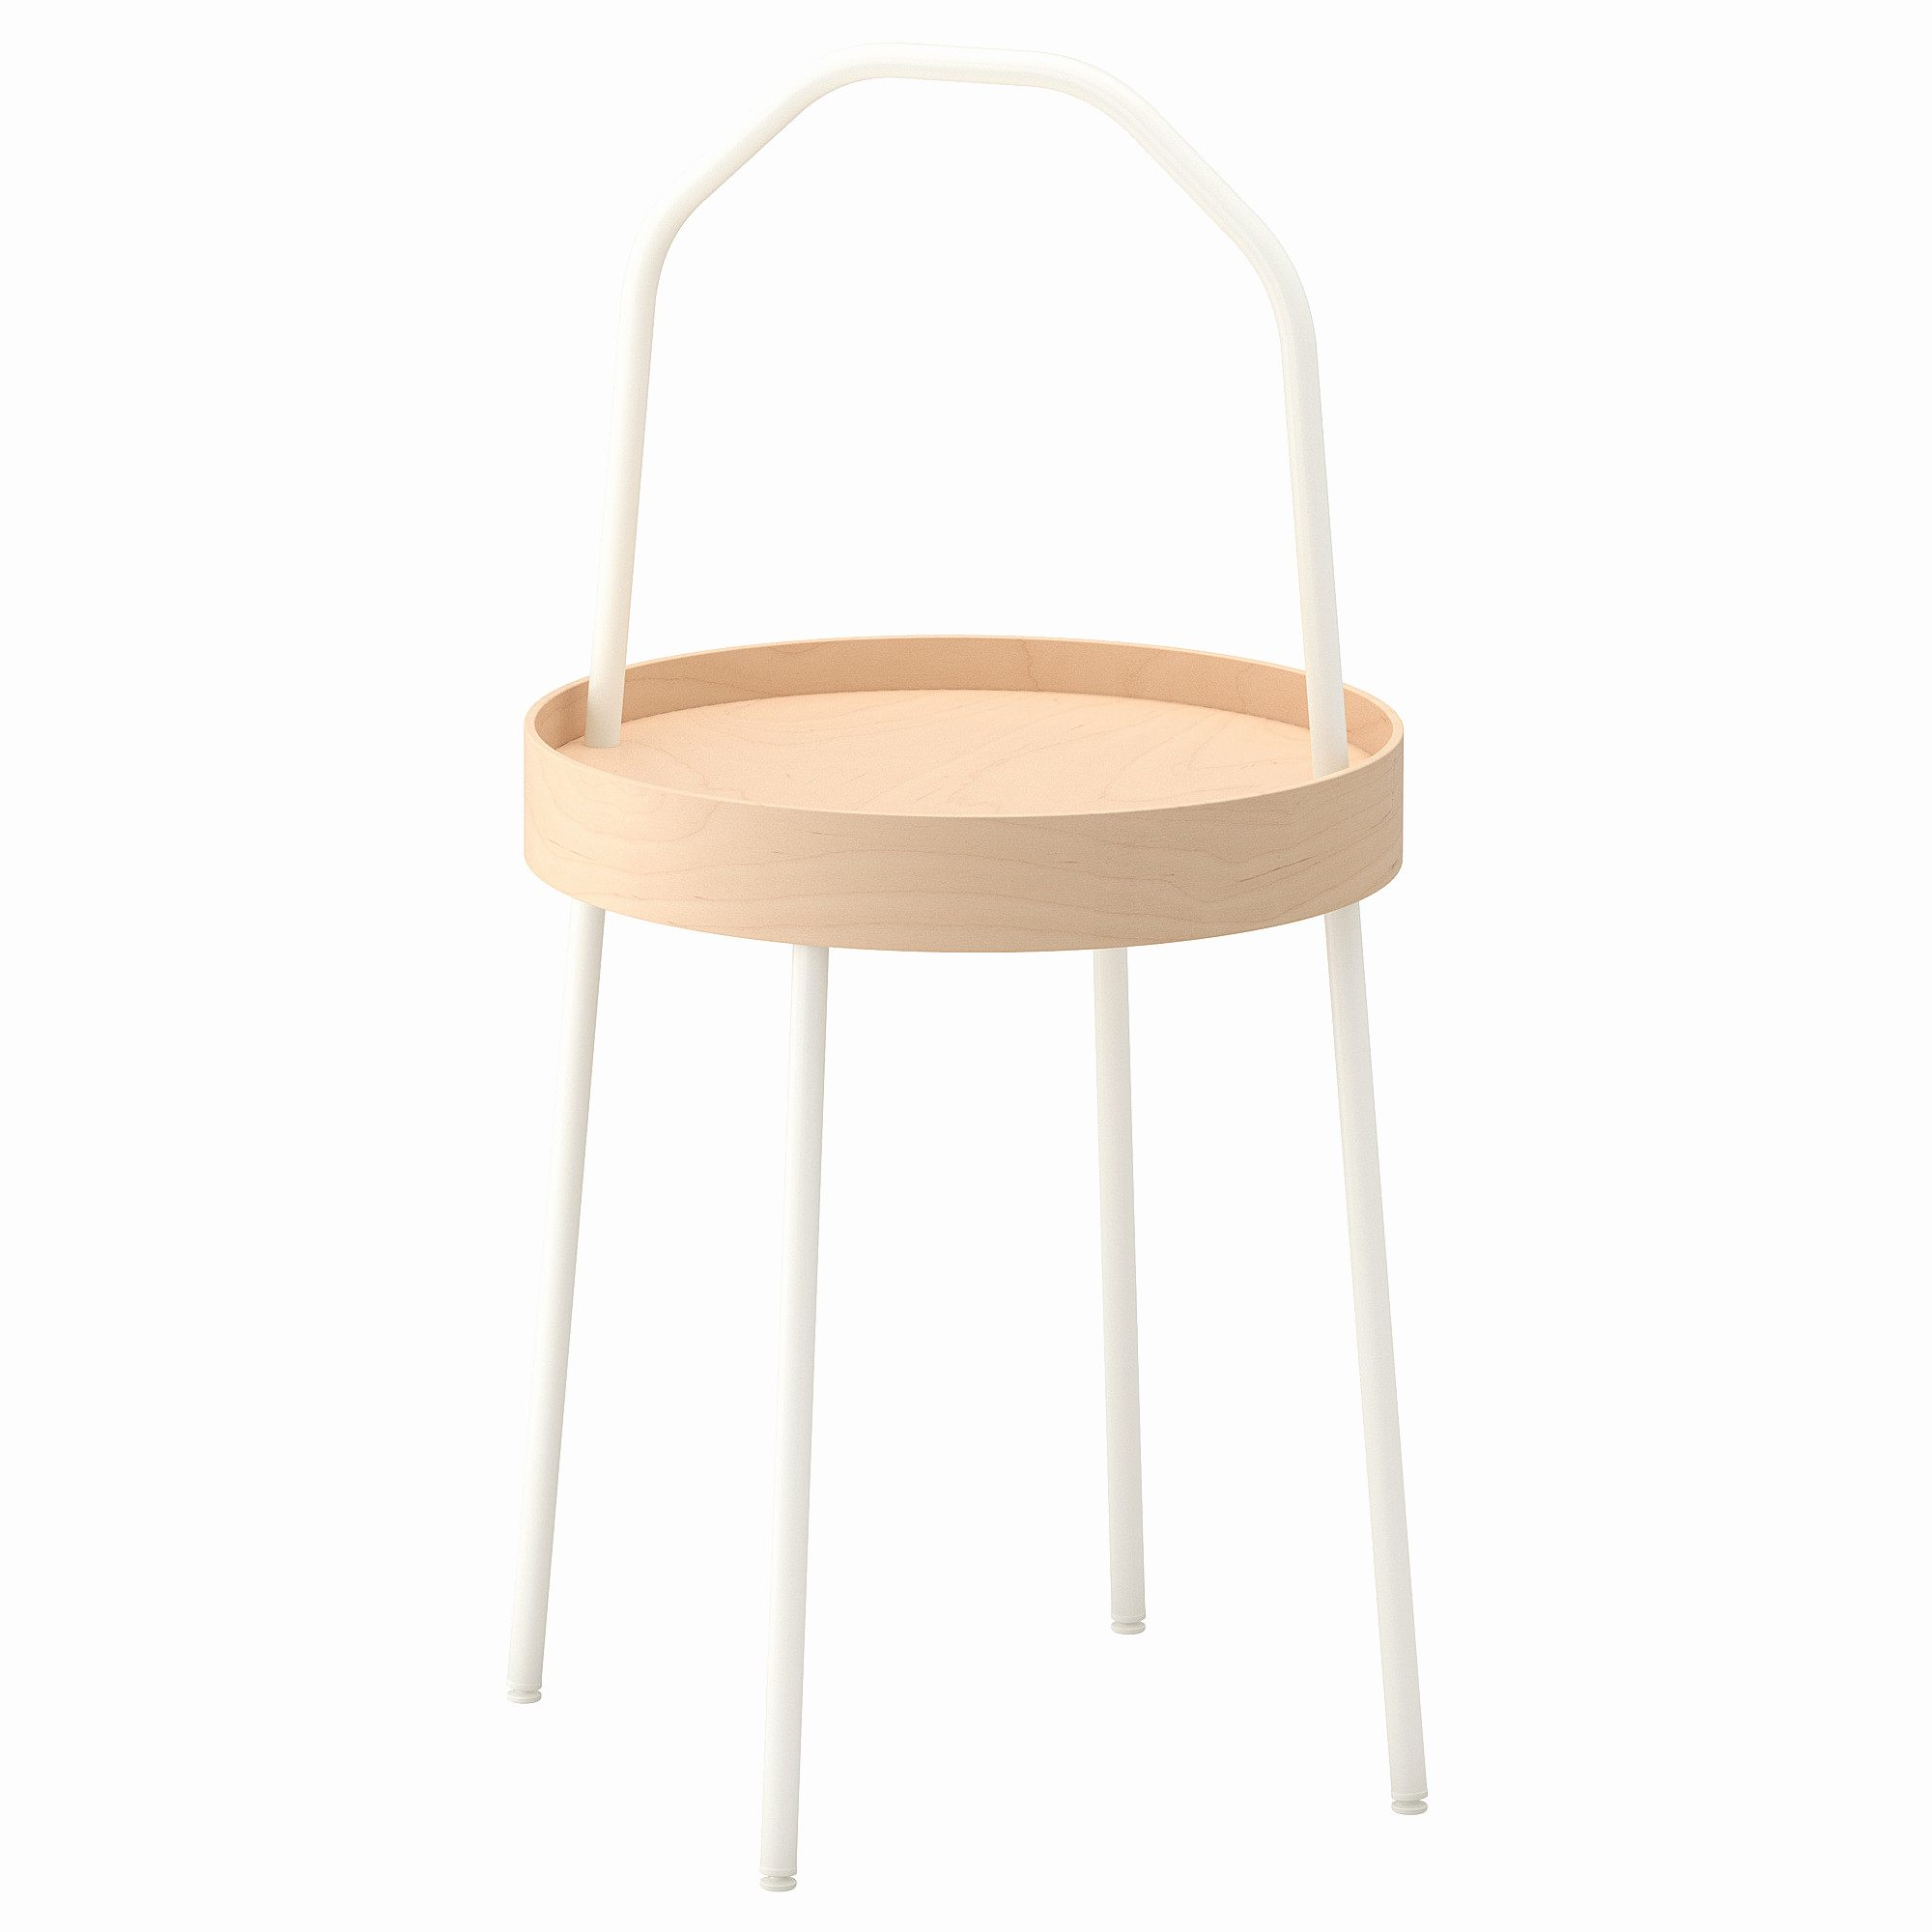 Lit D Appoint Ikea Agréable Table D Appoint Ikea Inspiré Table Appoint Ikea Beau Quirky Living